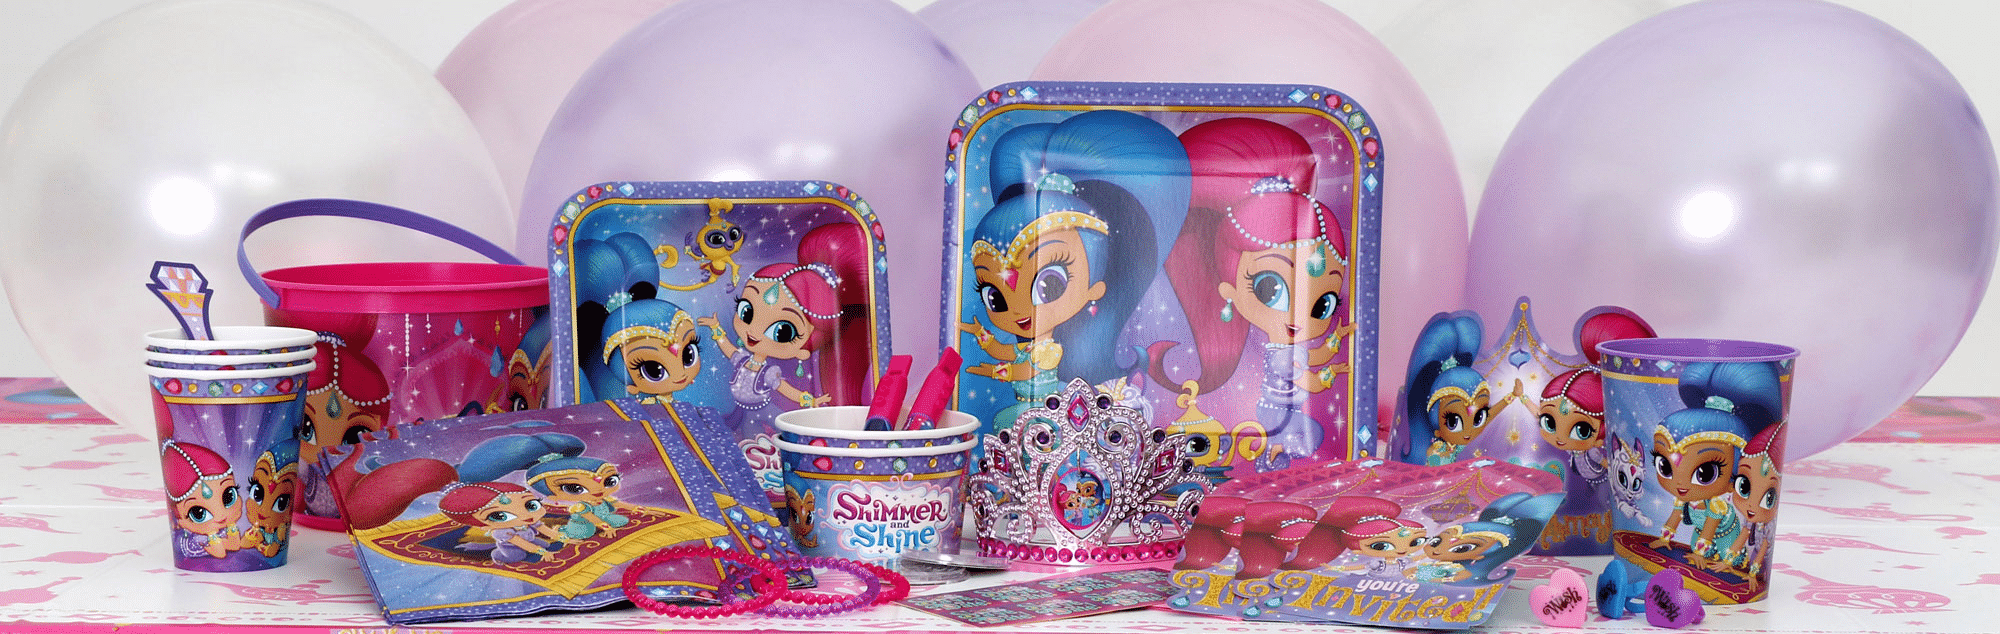 Shimmer & Shine themed party supplies, Shimmer & Shine Party decorations & balloons next day delivery